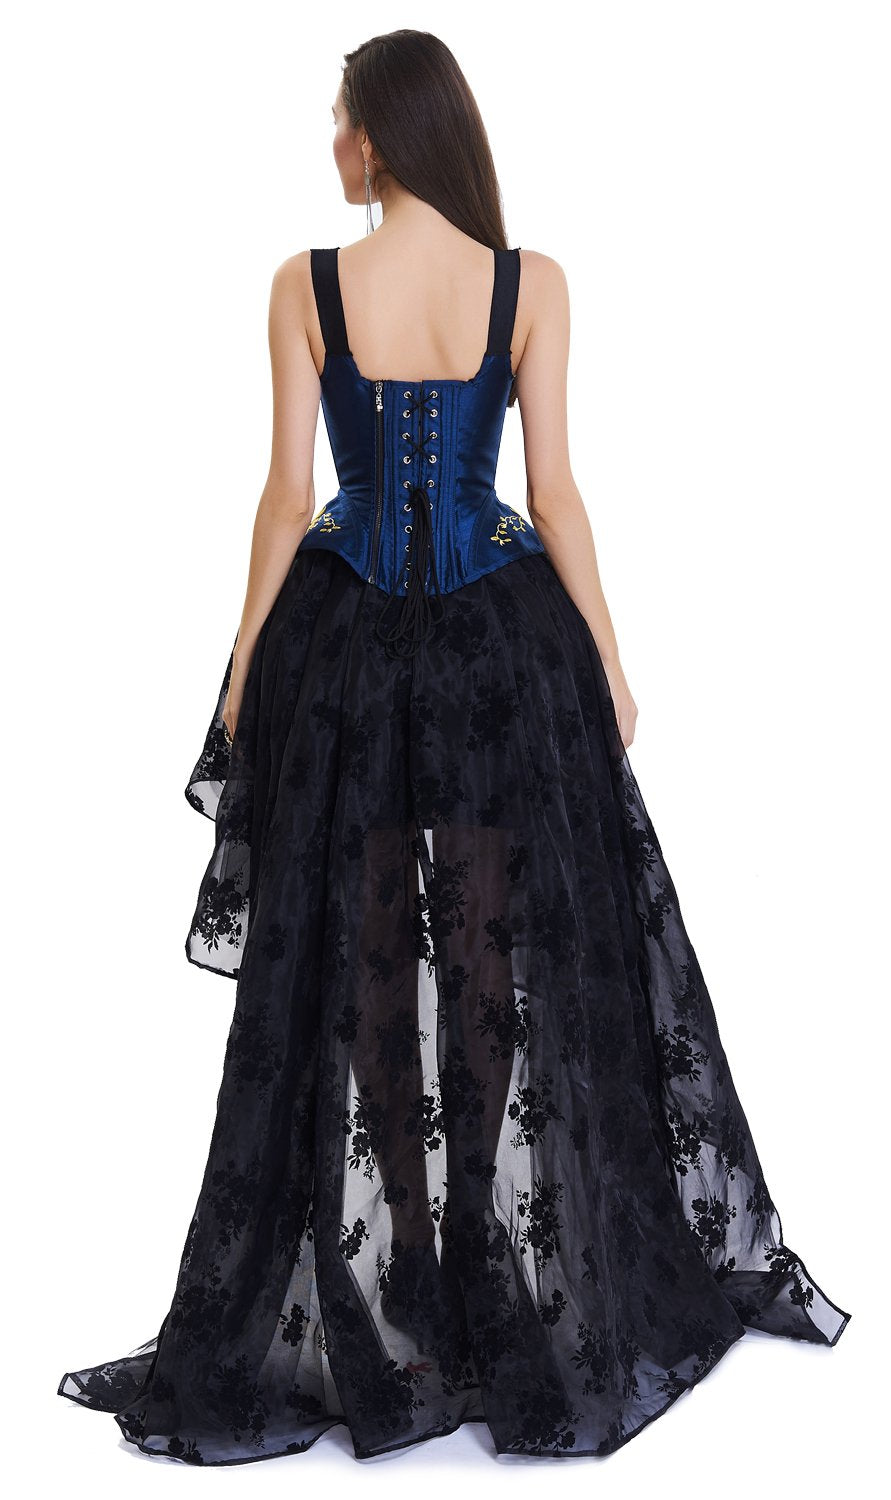 2 Pcs Gorgeous Victorian Floral Embroidery  Tank Steel Bone Corset & Organza Skirt Set